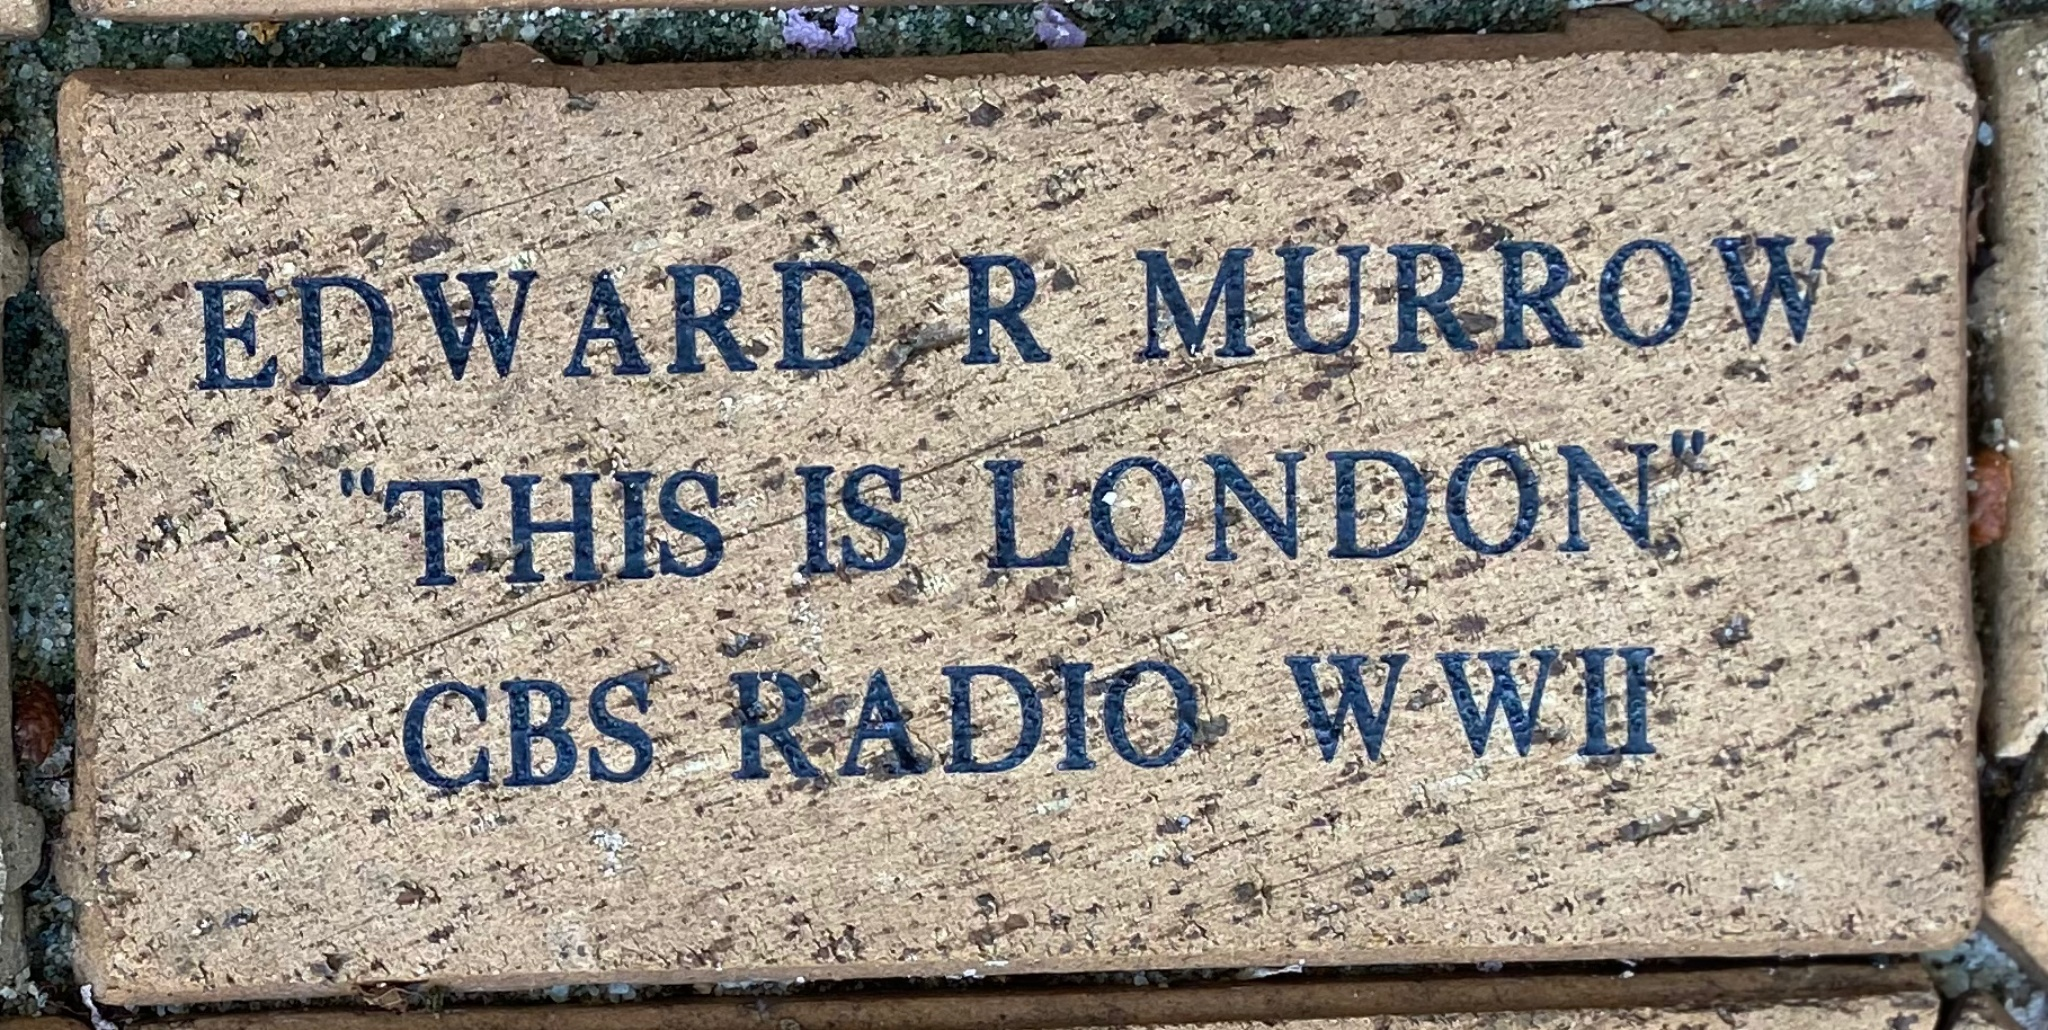 "EDWARD R MURROW ""THIS IS LONDON"" CBS RADIO WWII"